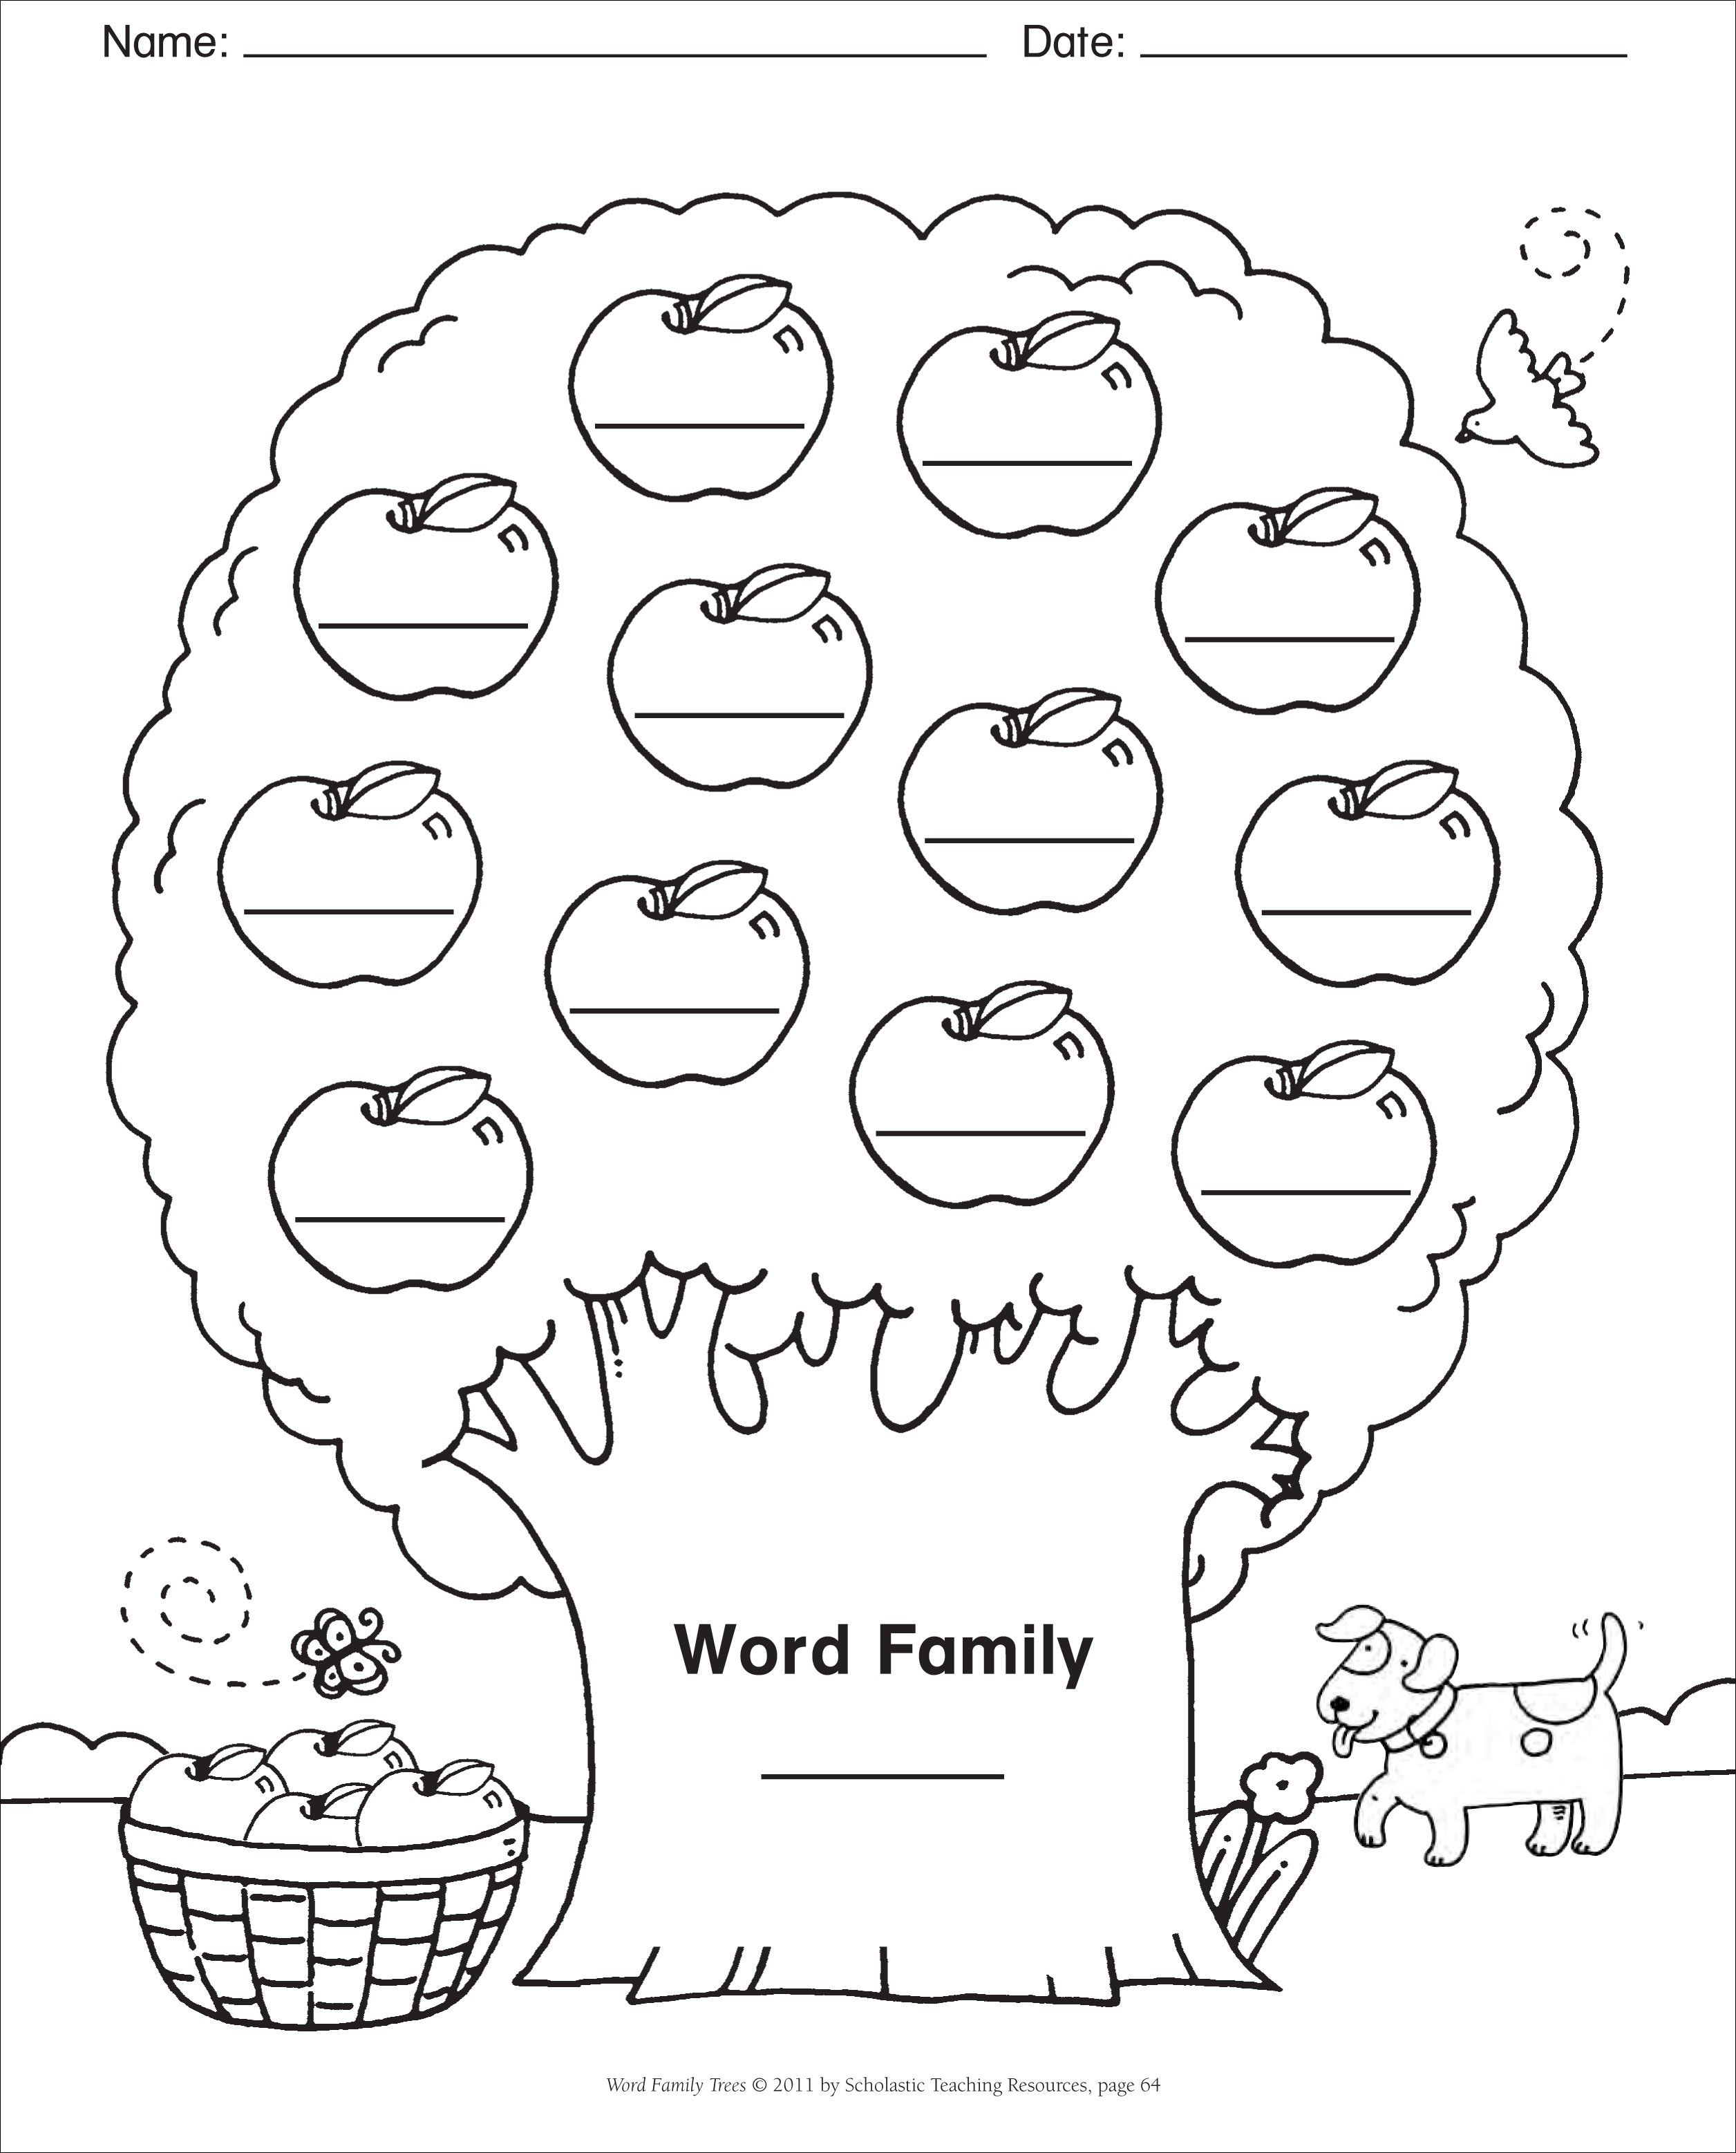 Word Family Template  Blank Template Word Family Tree  Spelling